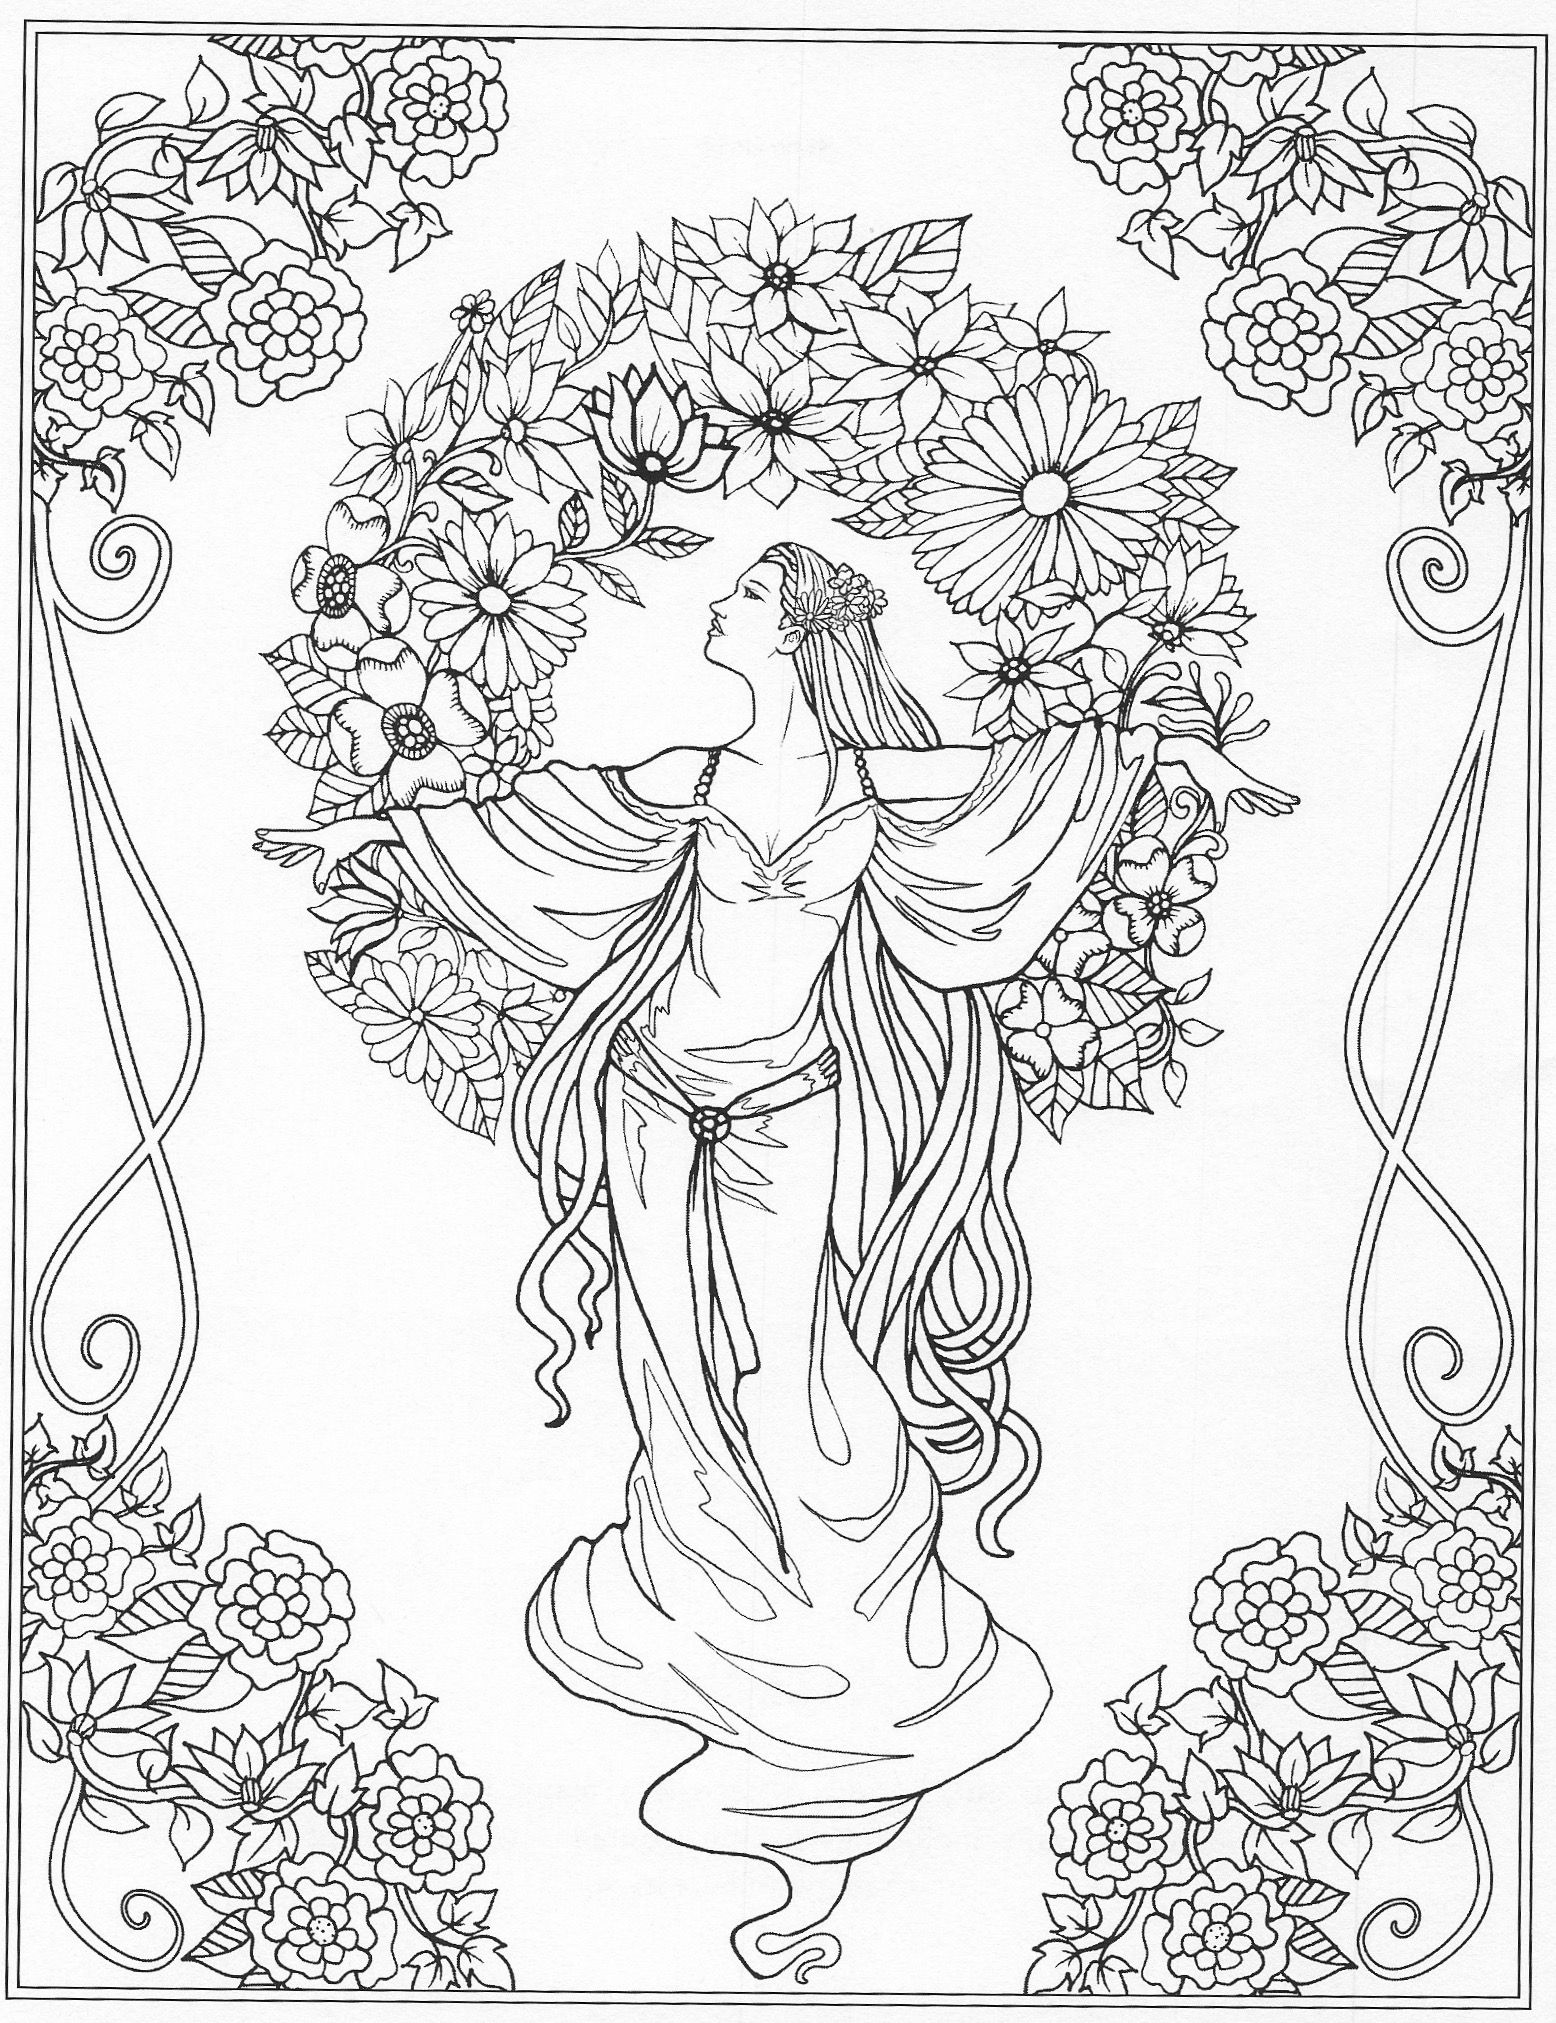 Beautiful Lady Amongst Flowers Coloring Page Flower Coloring